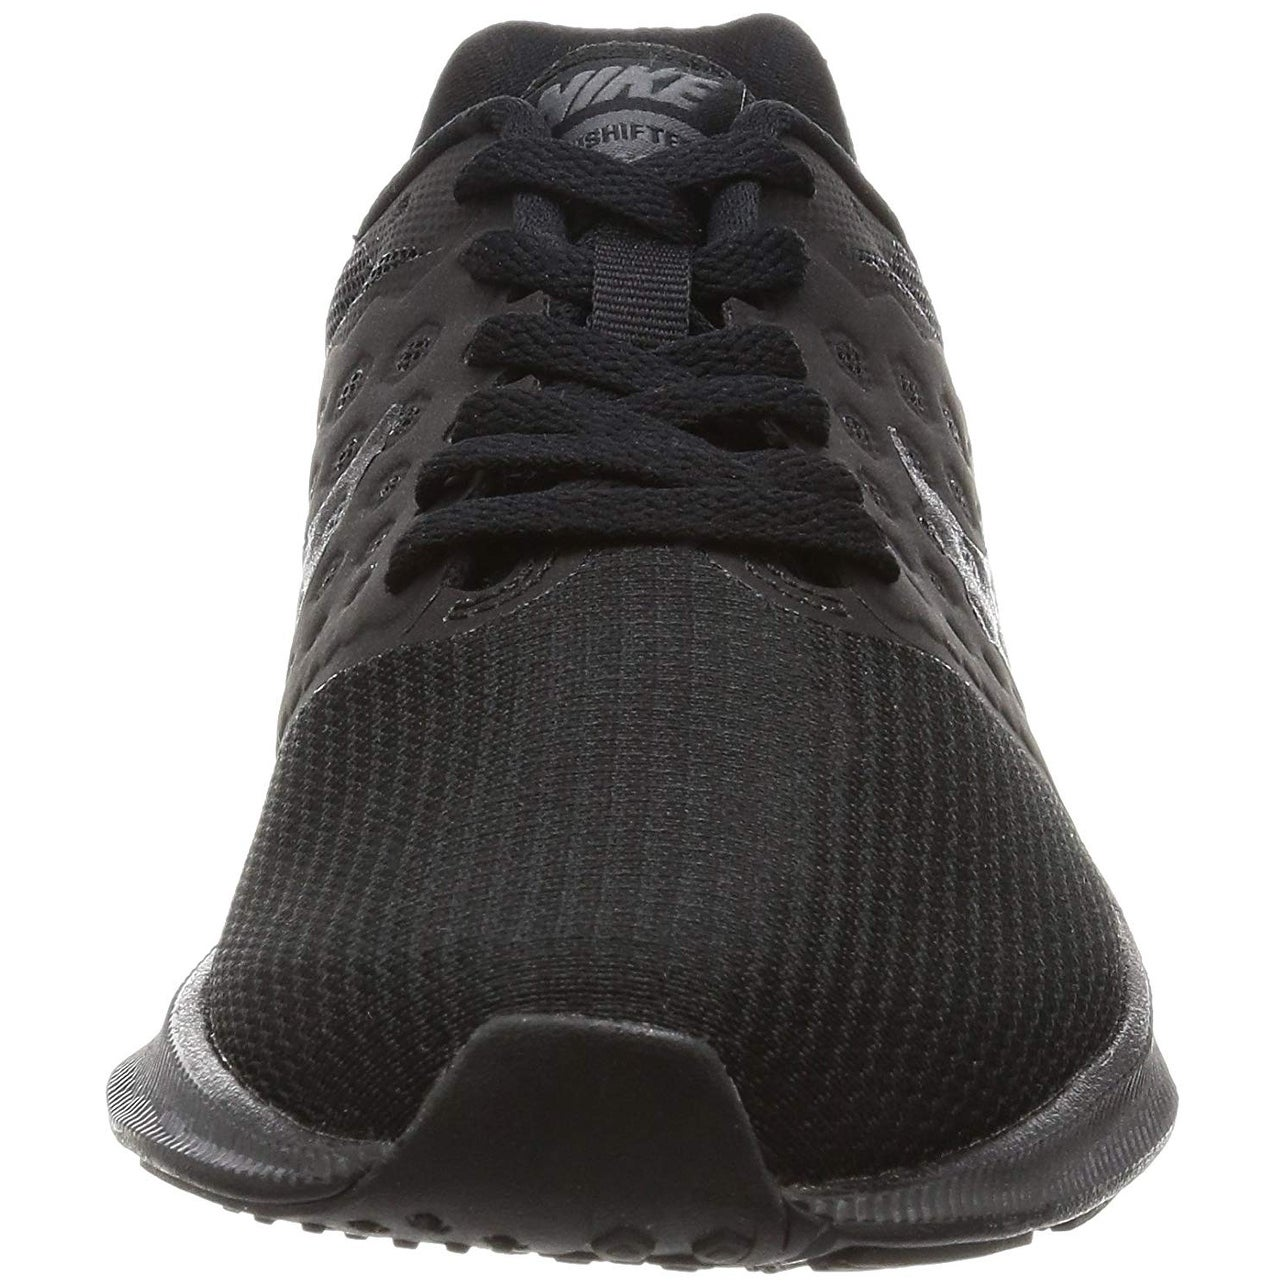 fe2d15be4d8a Shop Nike Womens Downshifter 7 Black Mtlc Hematite Anthracite Running Shoe  7.5 Women Us - Free Shipping Today - Overstock.com - 24264493